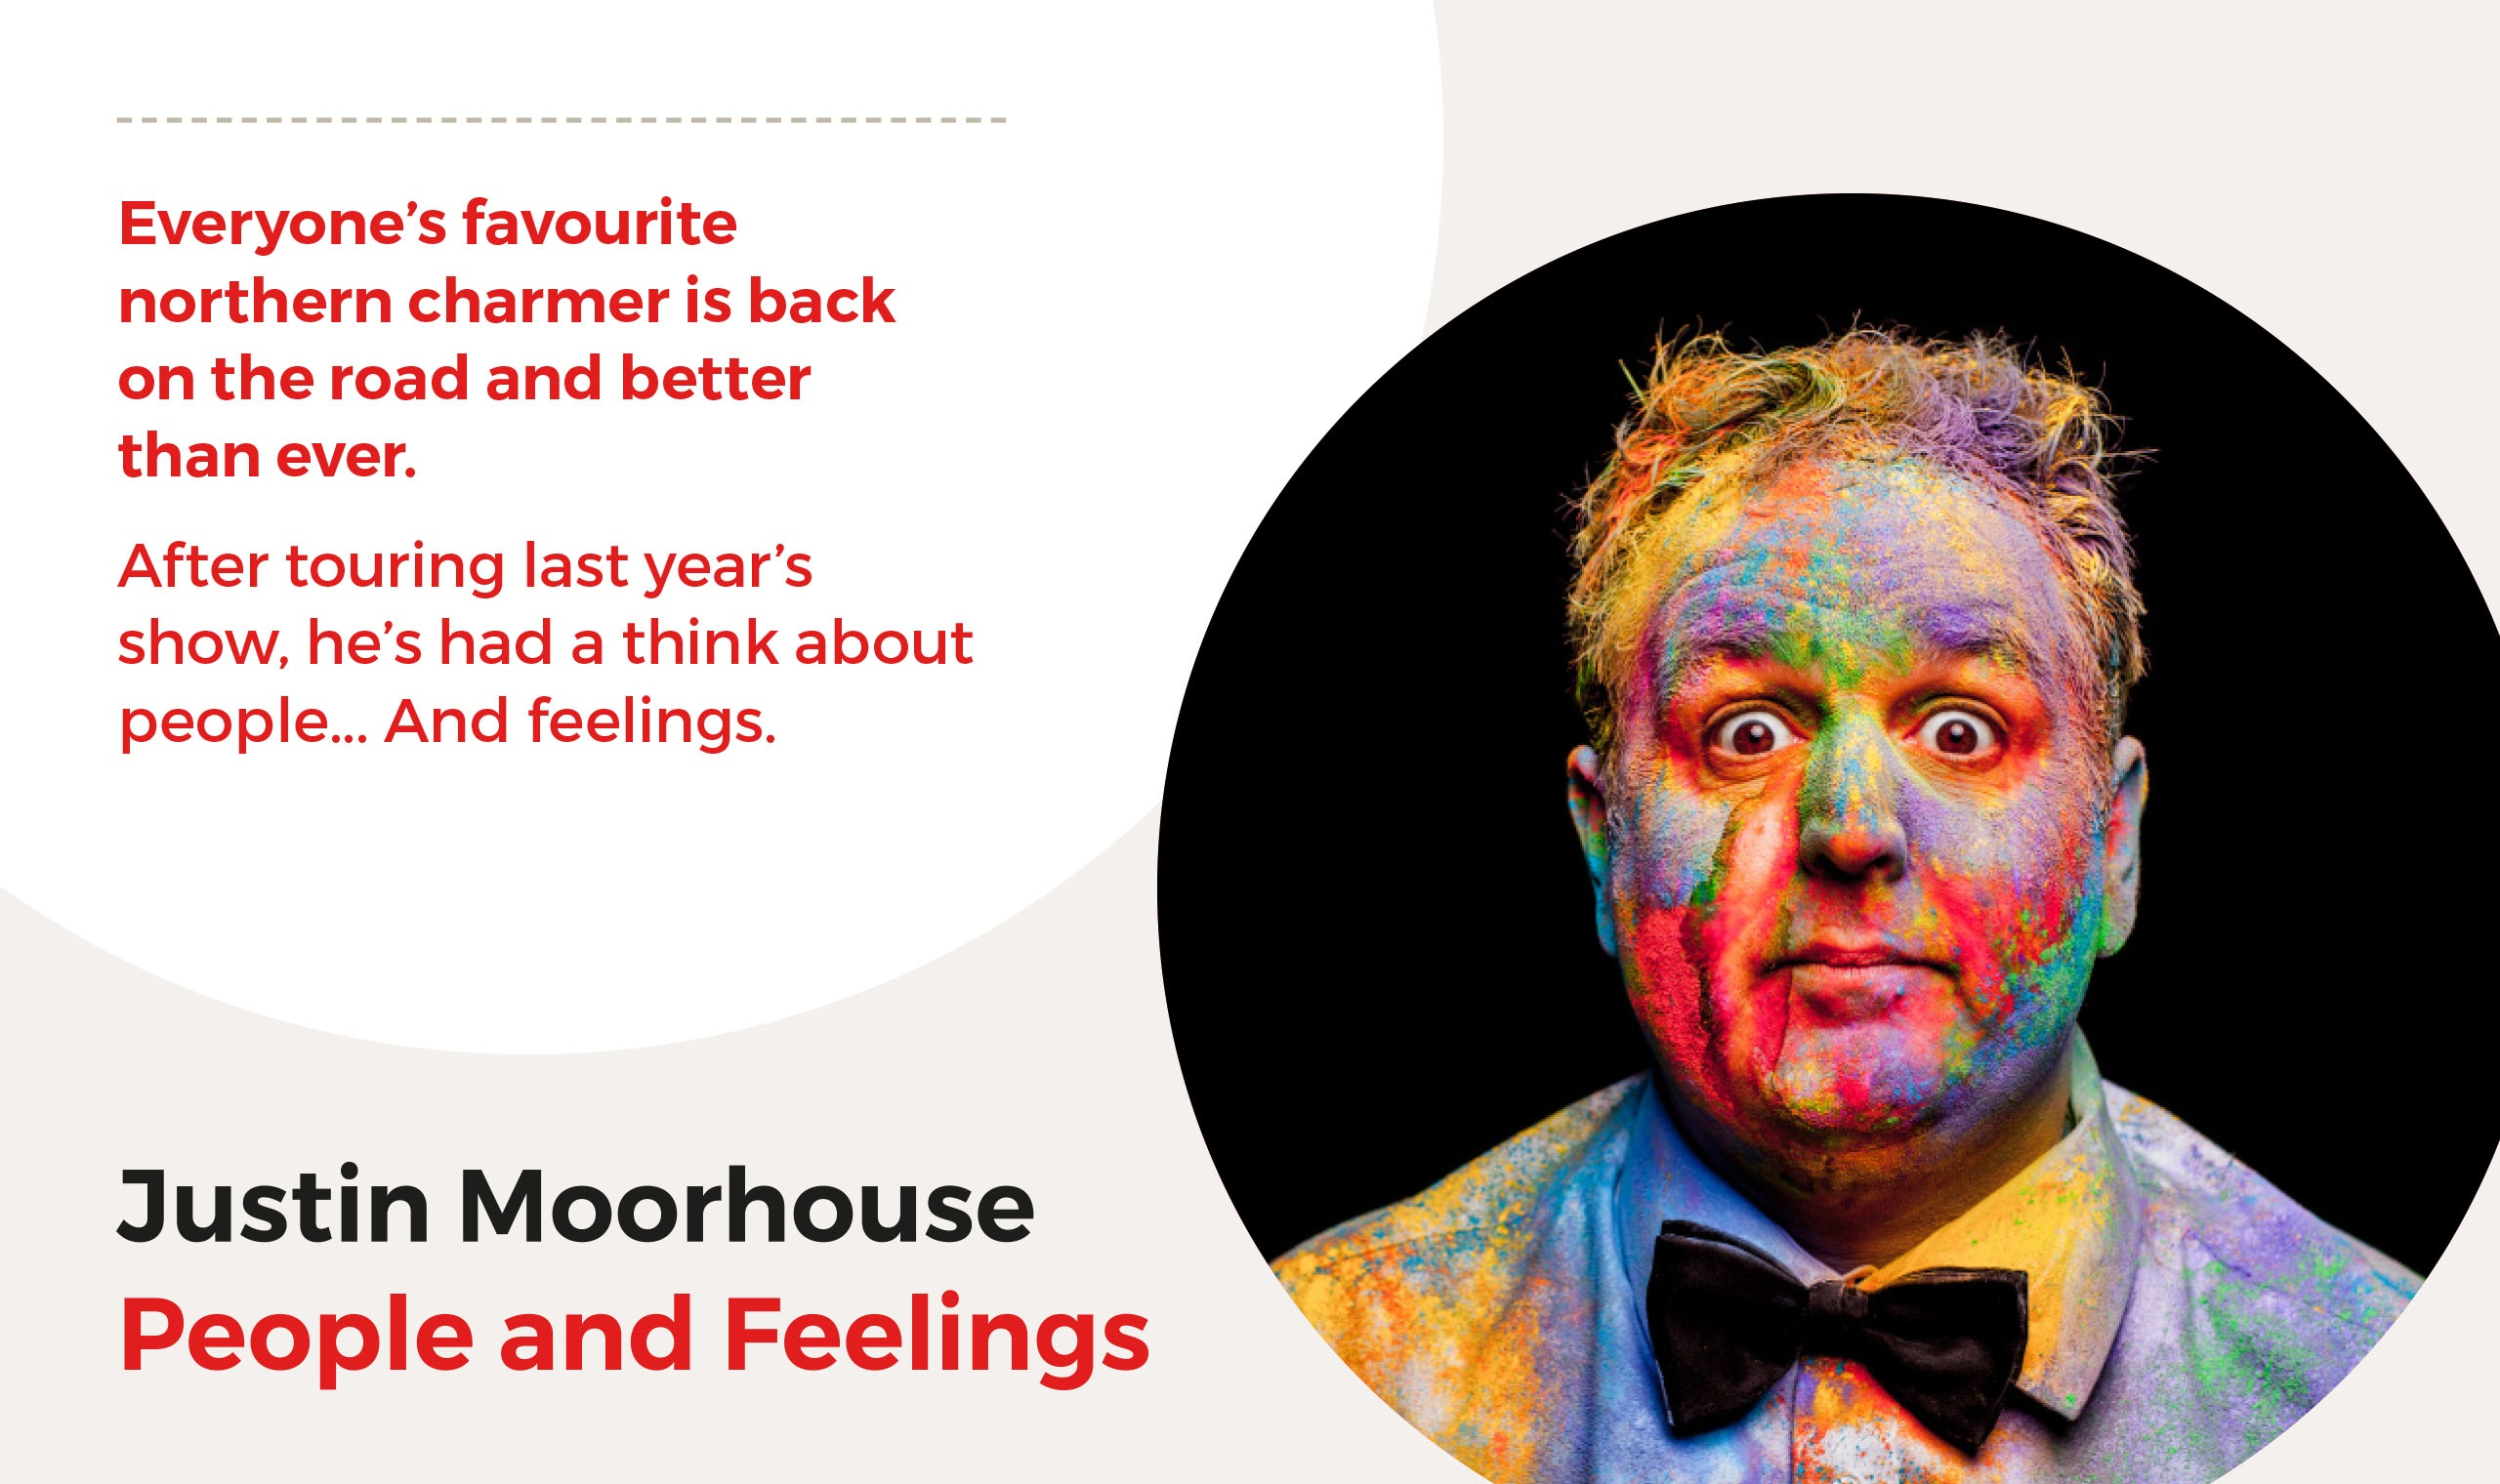 Justin Moorhouse quote